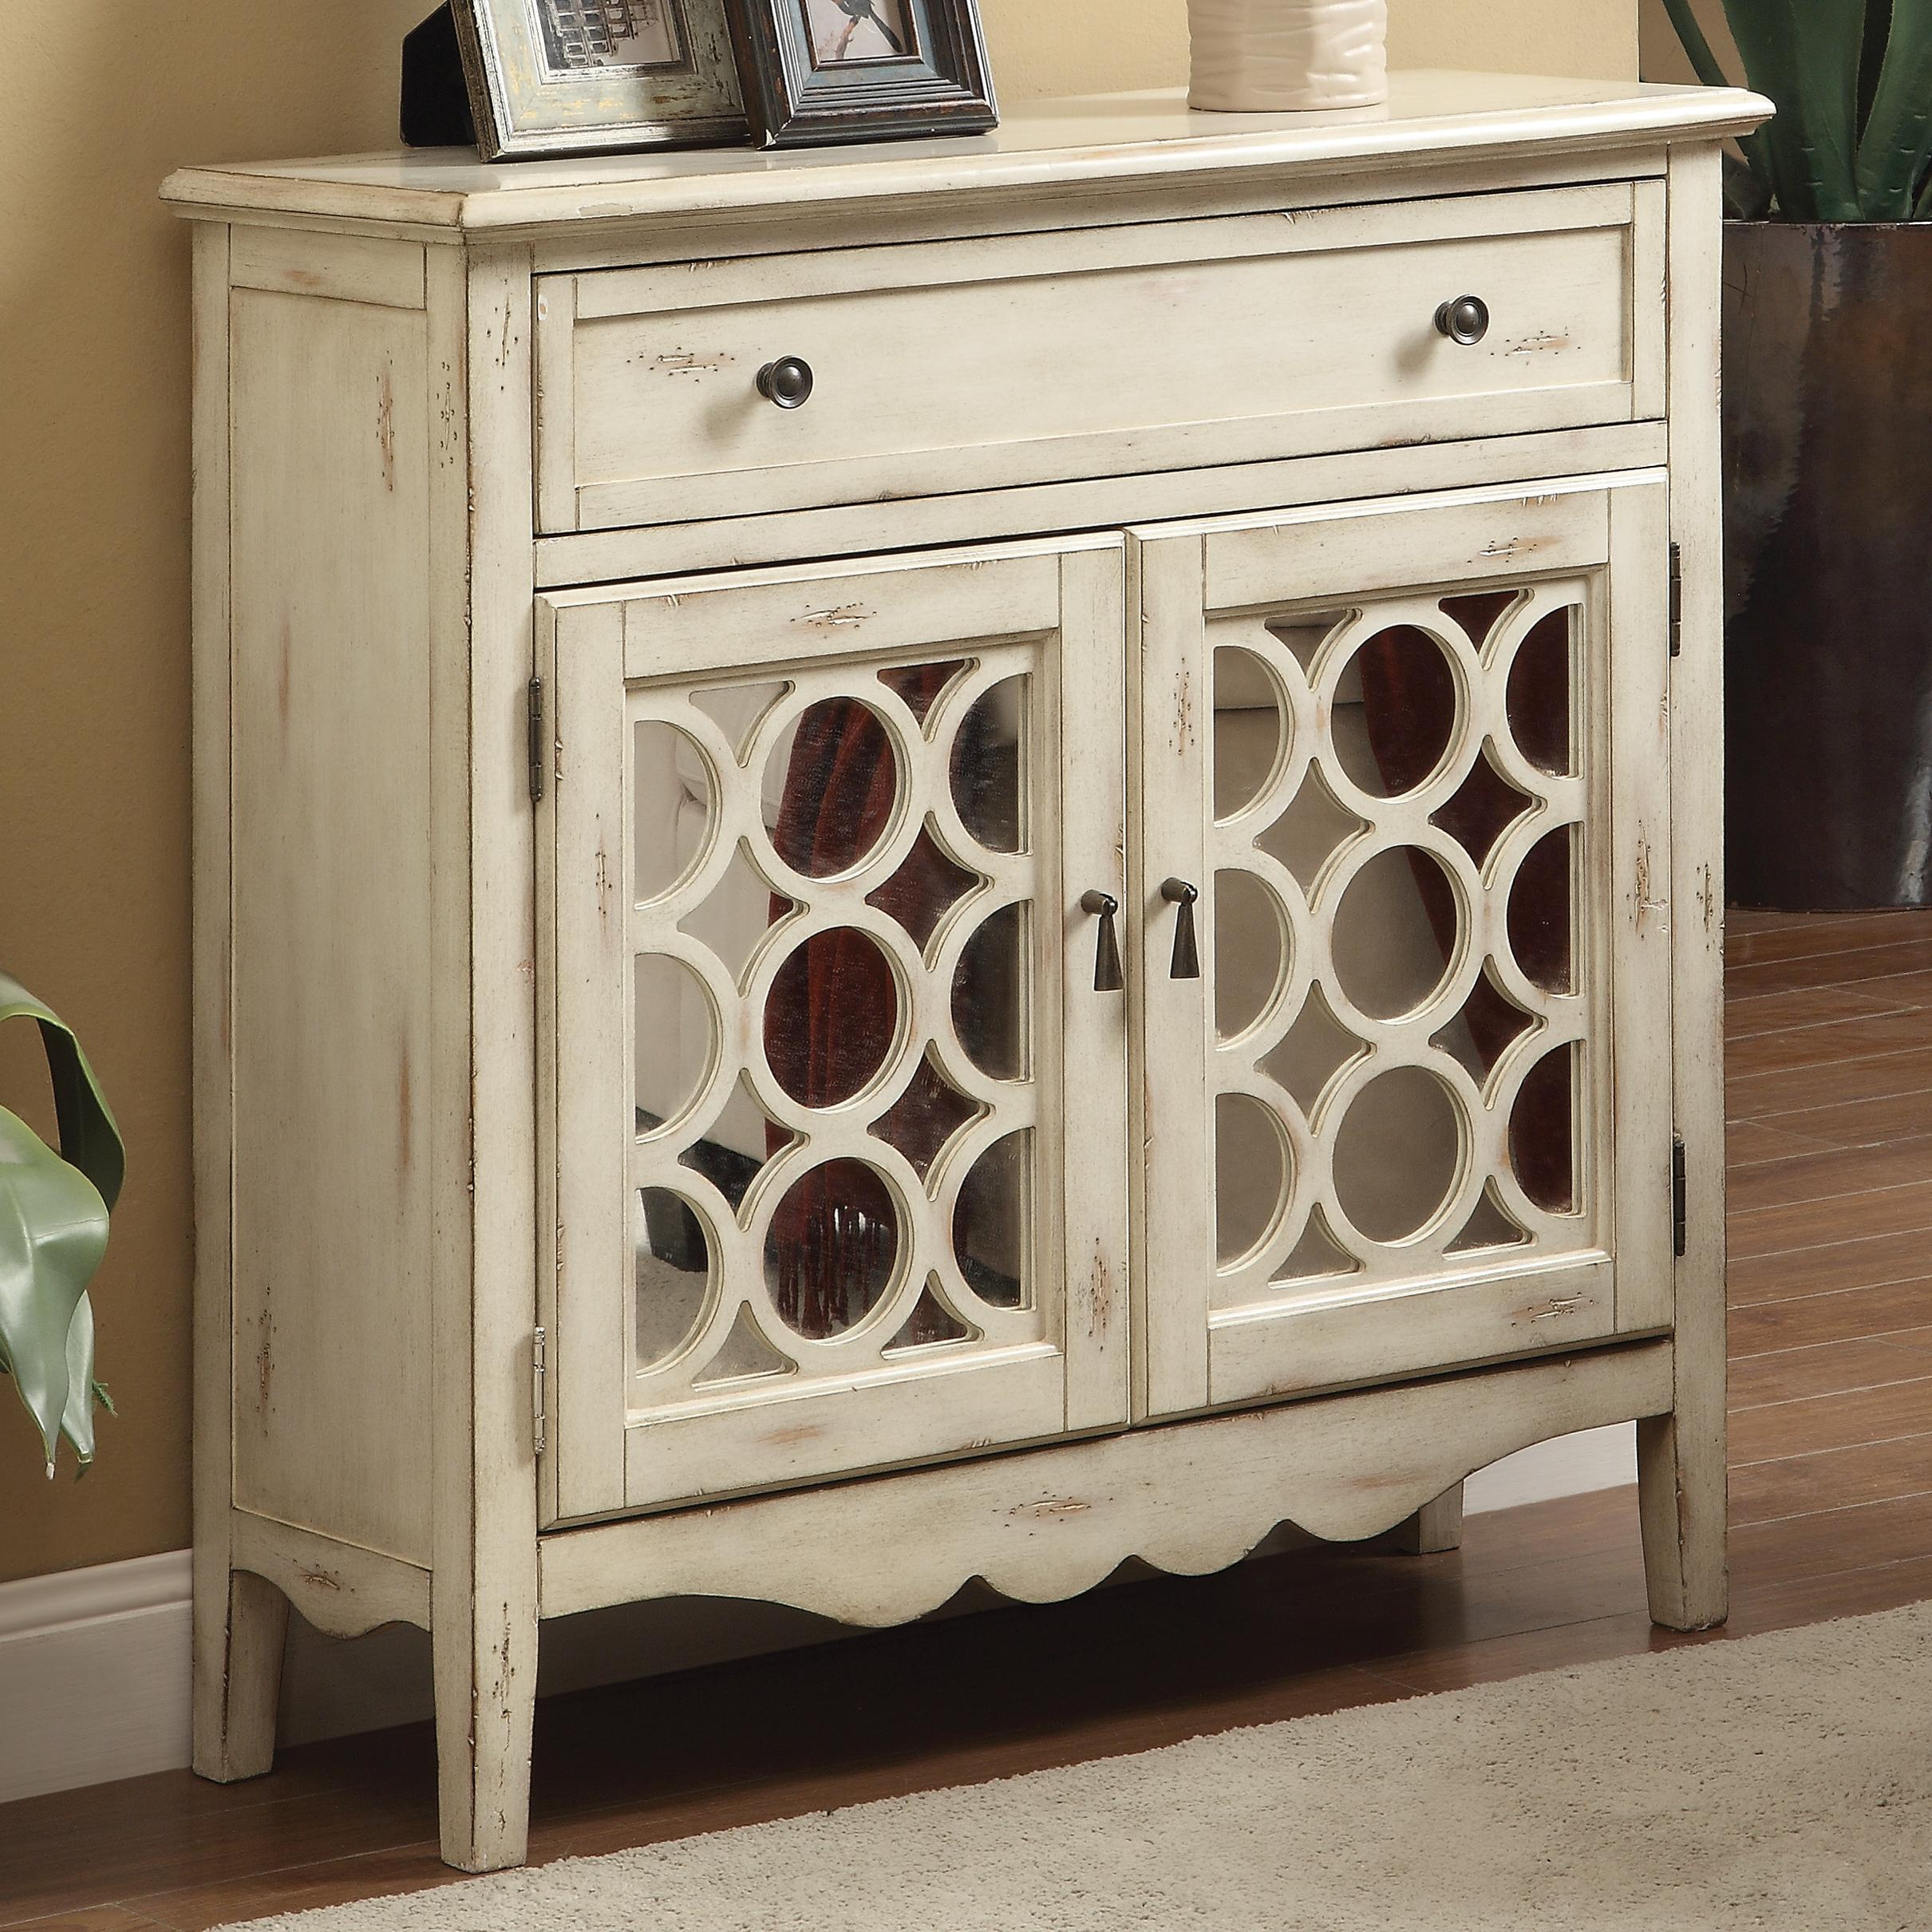 Accent cabinets antiqued white finish accent cabinet with mirror doors quality furniture at - Small space cabinet pict ...